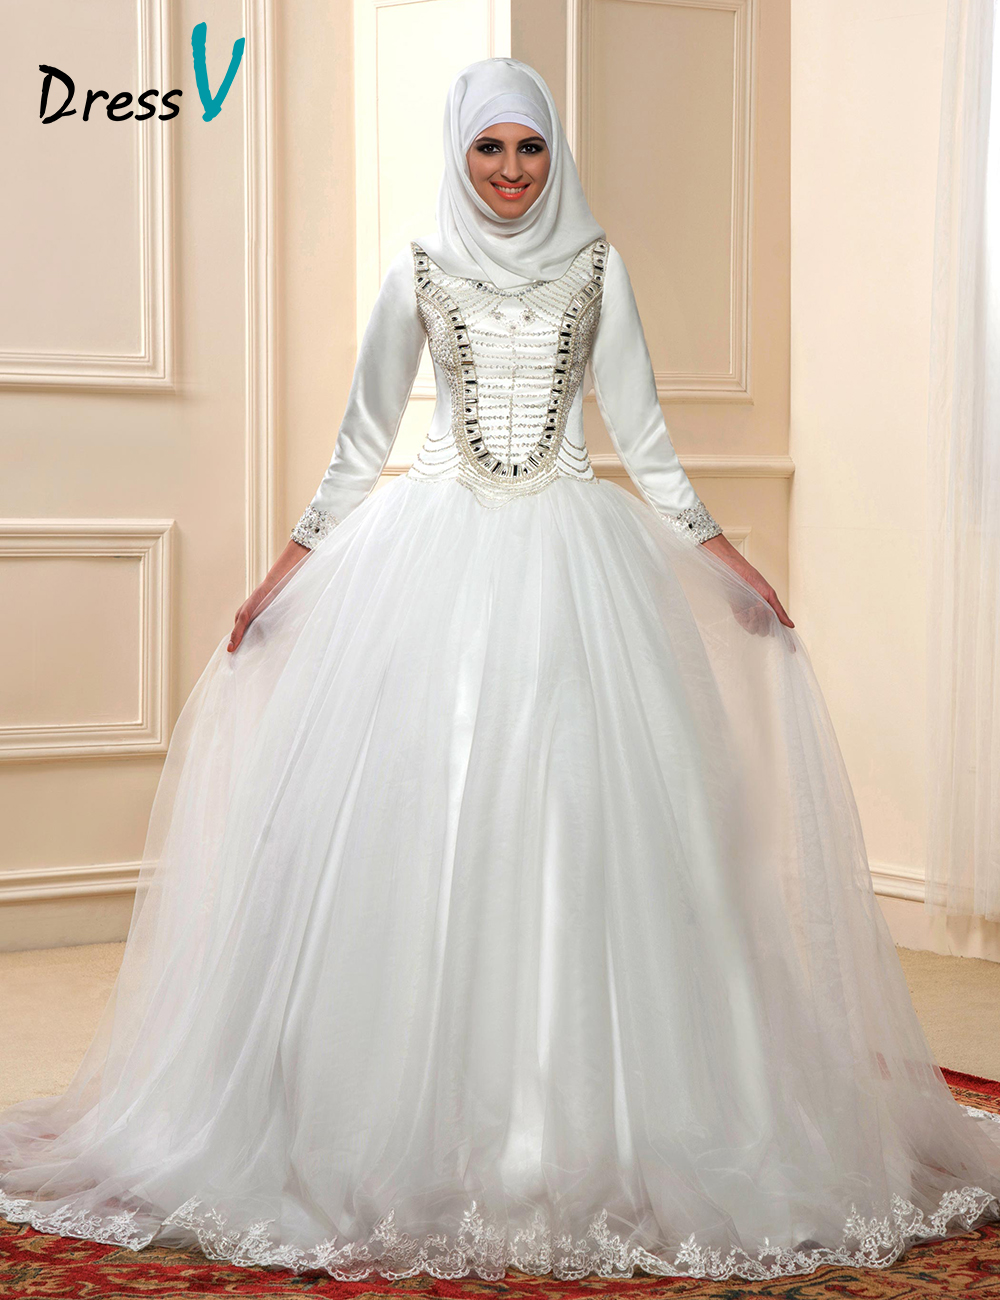 2016 luxury muslim ball gown wedding dresses with long for Wedding dresses in dubai prices